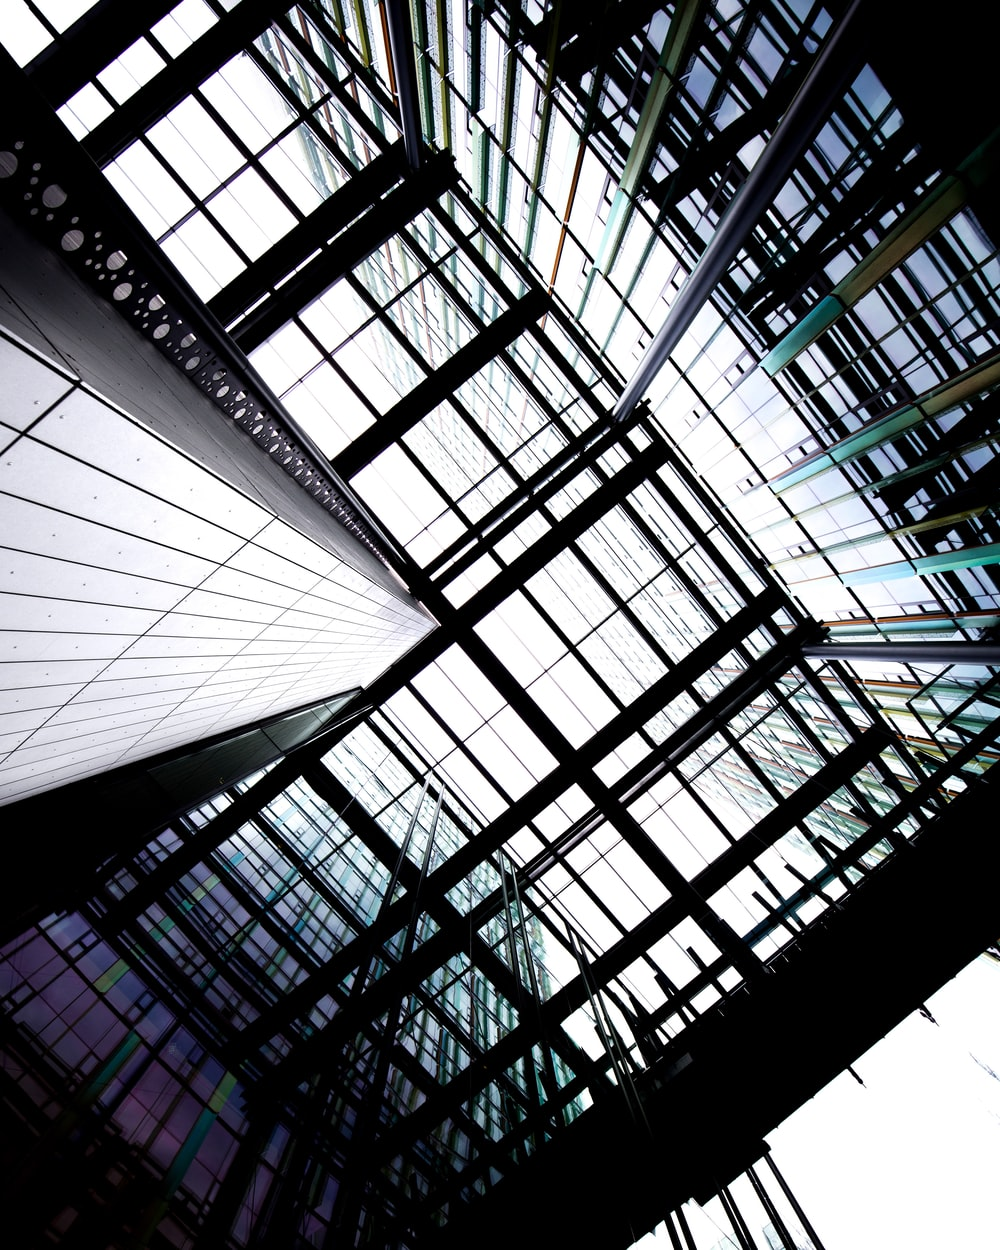 worms eyeview of glass building